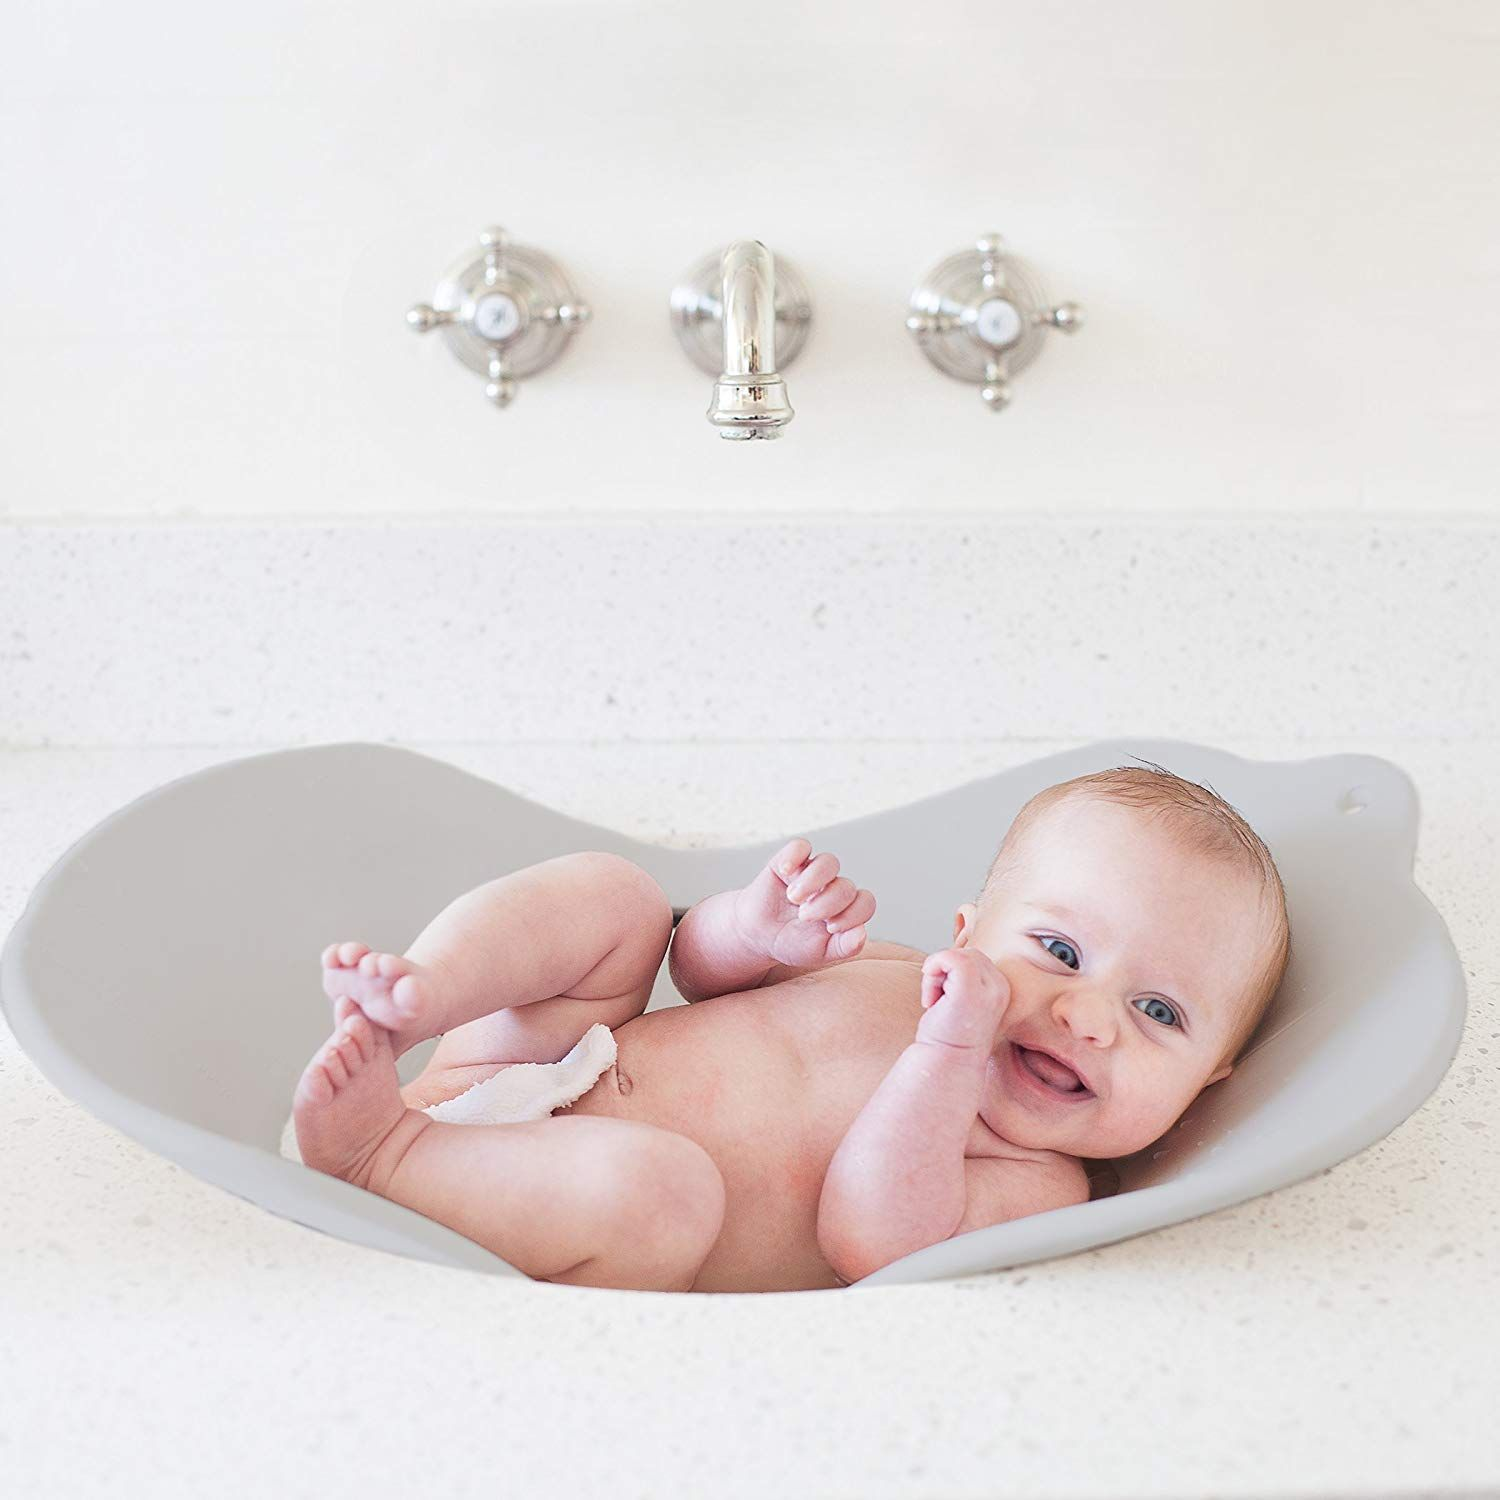 Cradles And Protects Baby During Bath Small Enough To Fit In A